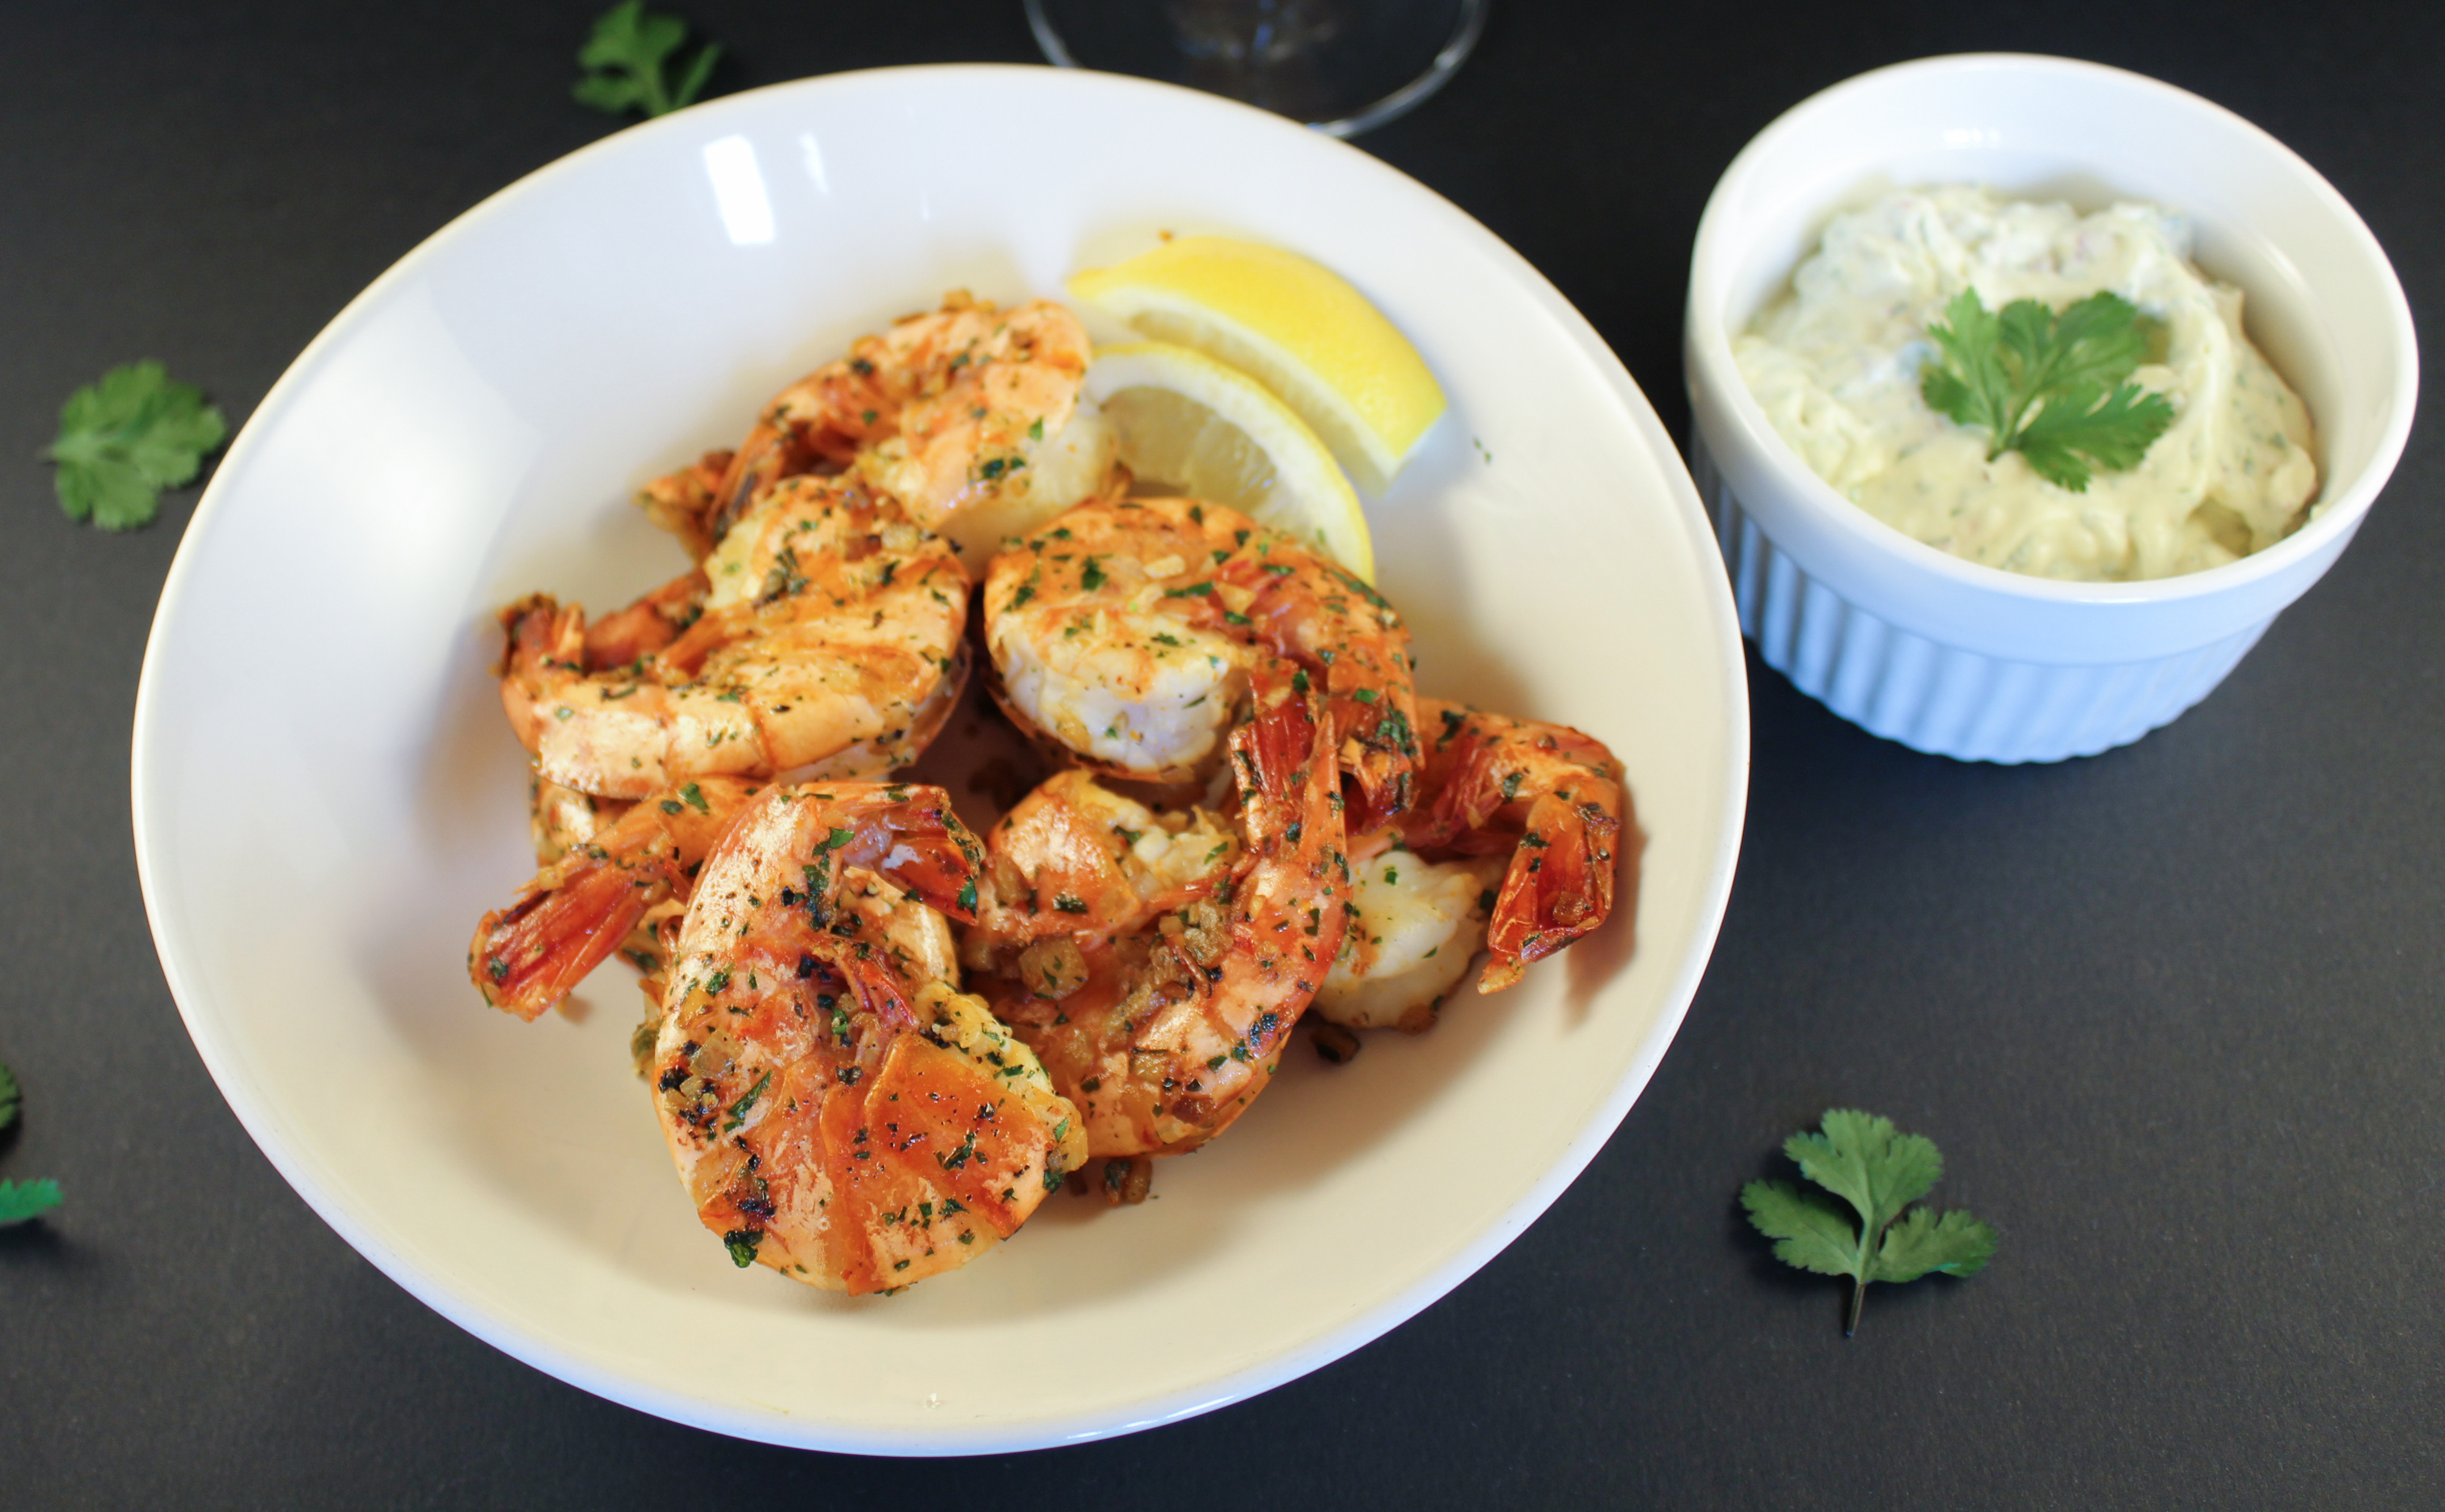 Spicy Tiger Shrimps with Onion Mayo | www.notafoodexpert.com